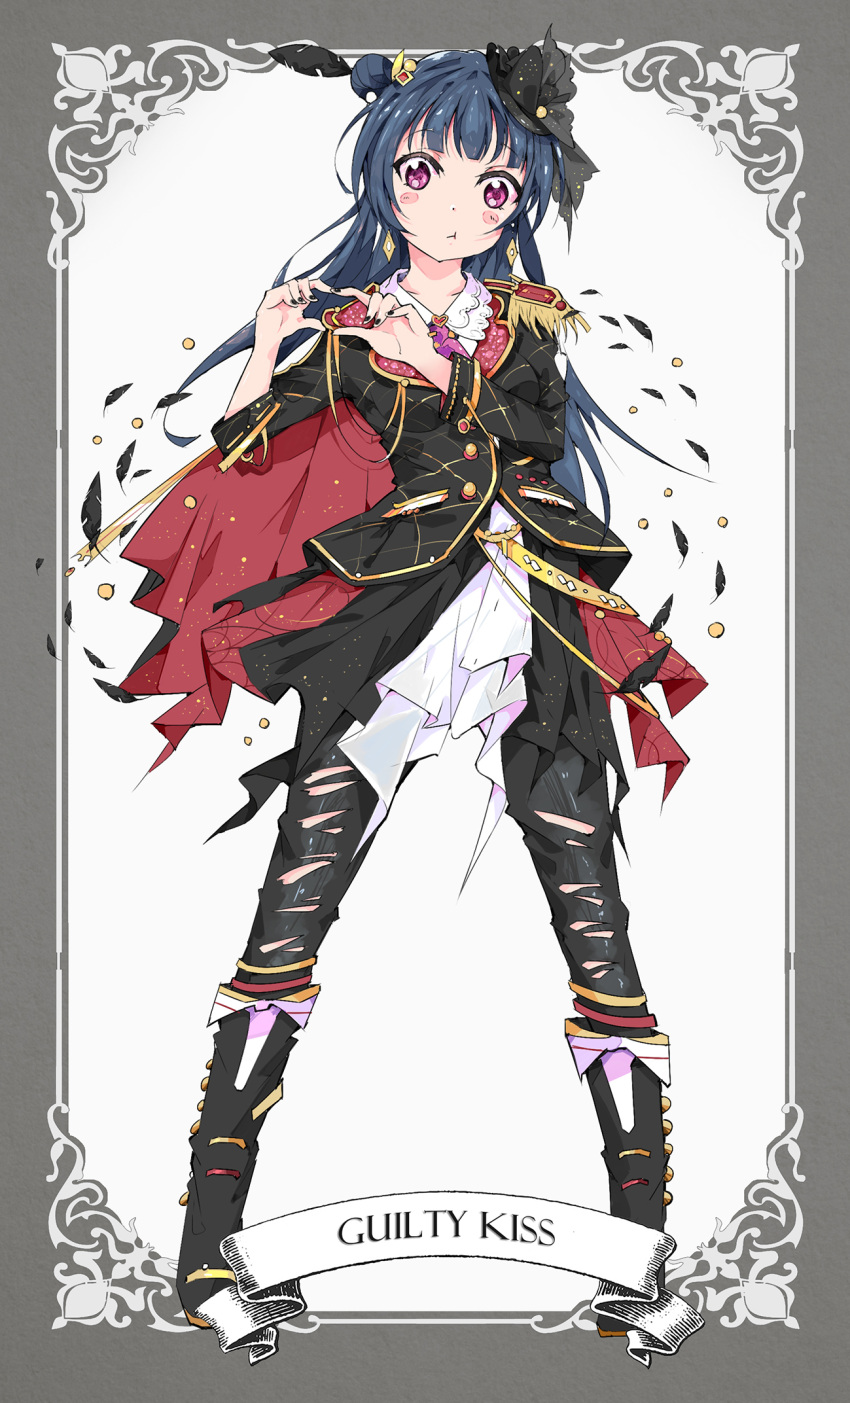 1girl :t bangs black_feathers black_nails black_pants blue_hair blush_stickers boots border cape earrings epaulettes feathers full_body grey_border group_name hair_feathers heart heart_hands highres jewelry long_hair long_sleeves love_live! love_live!_sunshine!! nail_polish pants qianqian side_bun solo strap suit_jacket torn_clothes torn_pants tsushima_yoshiko violet_eyes